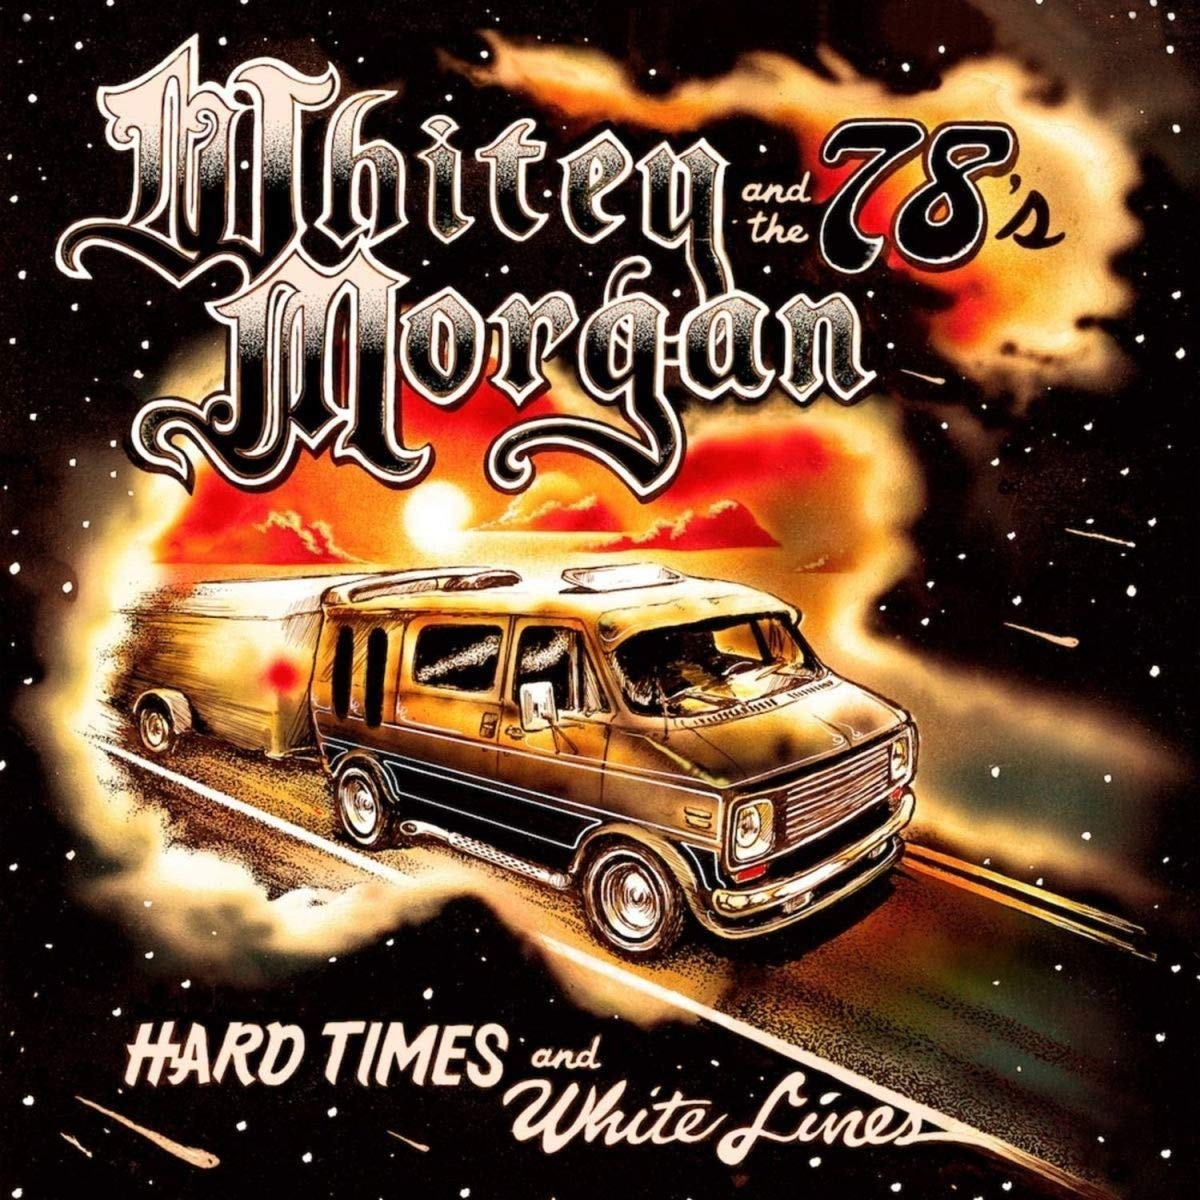 Hard Times and White Lines by WHITEY MORGAN MUSIC